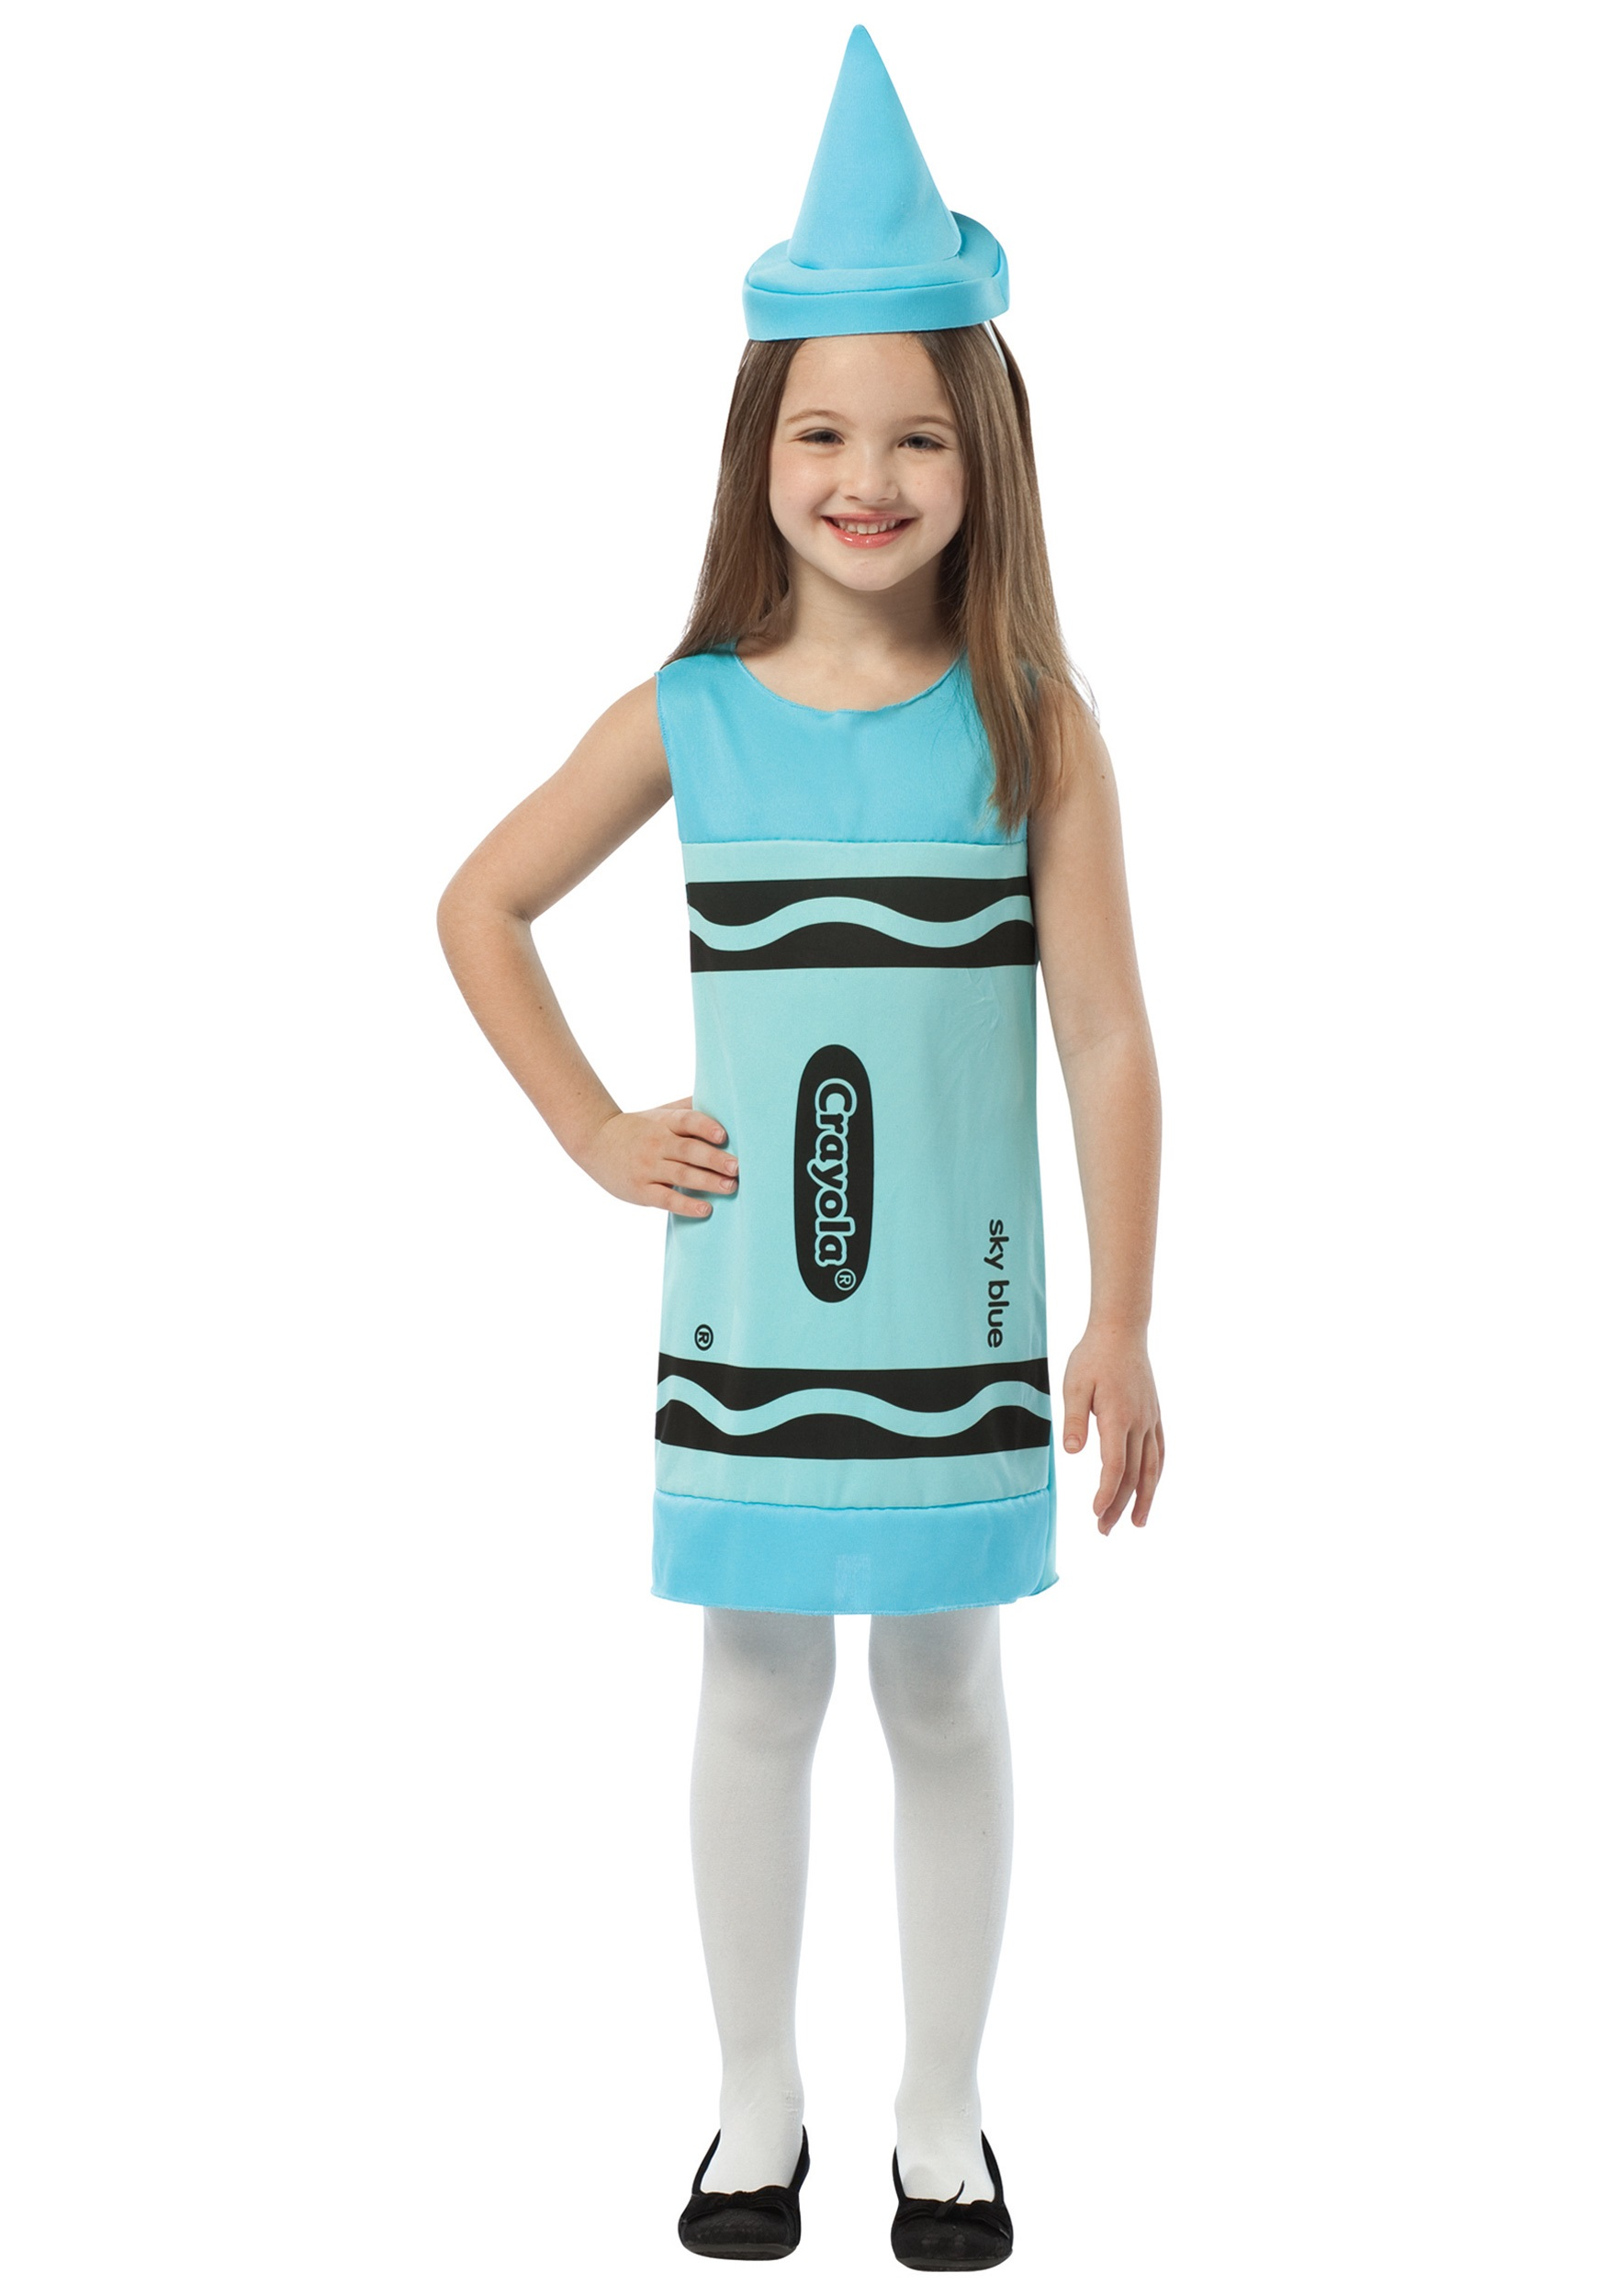 ... avatar costume ideas · child sky blue crayon dress ...  sc 1 st  Best Kids Costumes : avatar fancy dress costumes  - Germanpascual.Com